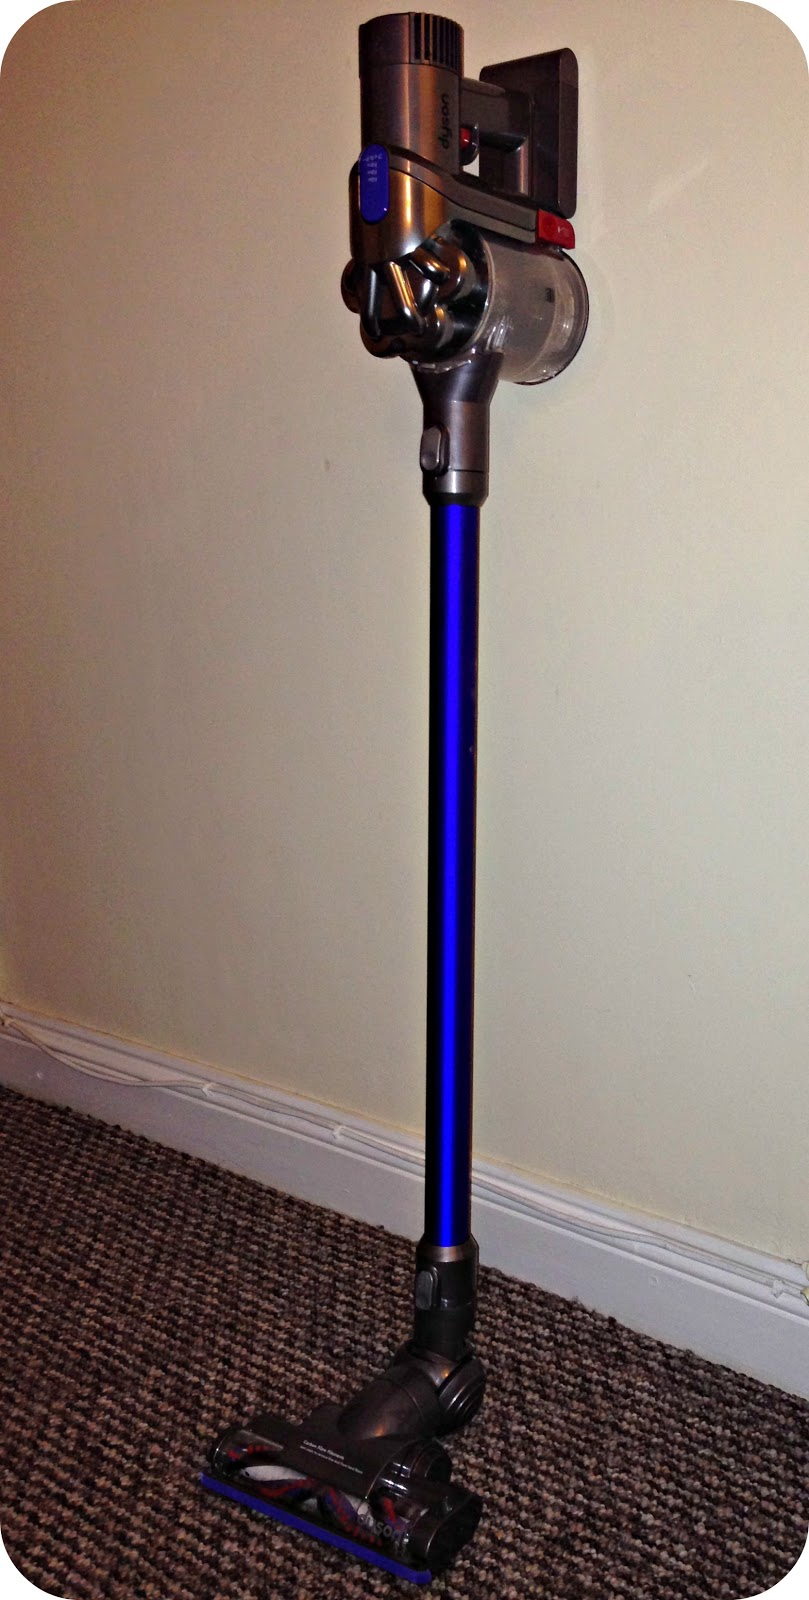 Life Unexpected The Dyson Digital Slim Cordless Vacuum Review